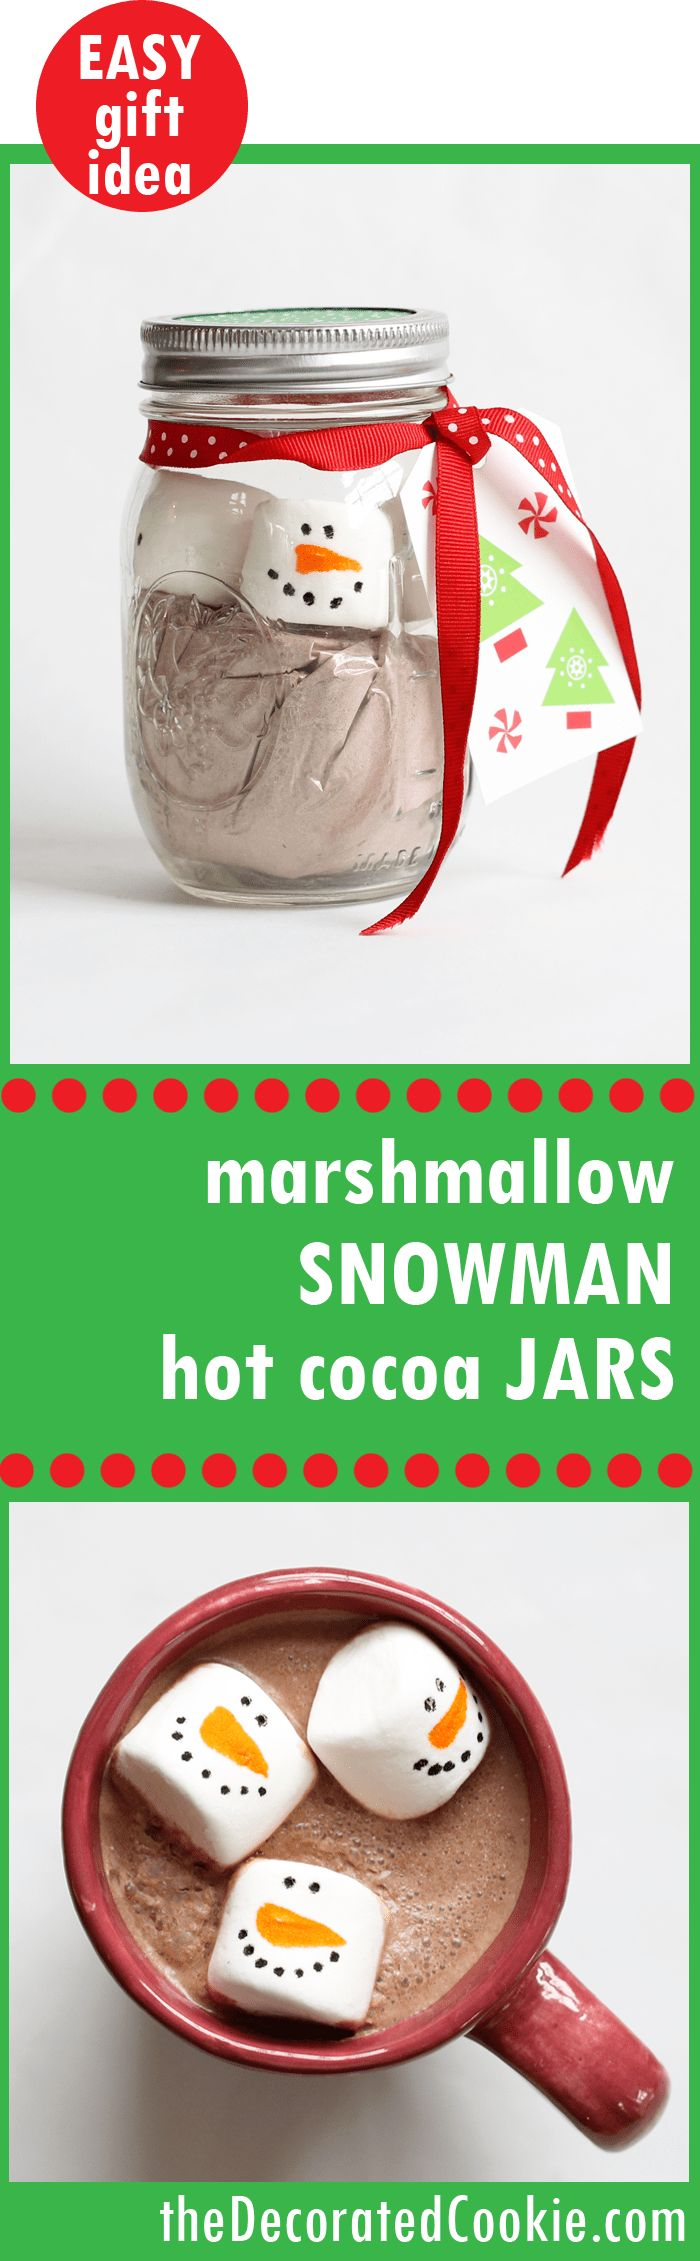 The ORIGINAL marshmallow snowman hot cocoa jars! Great handmade Christmas food gift idea. Originally posted in 2009, one of my most popular blog posts ever!